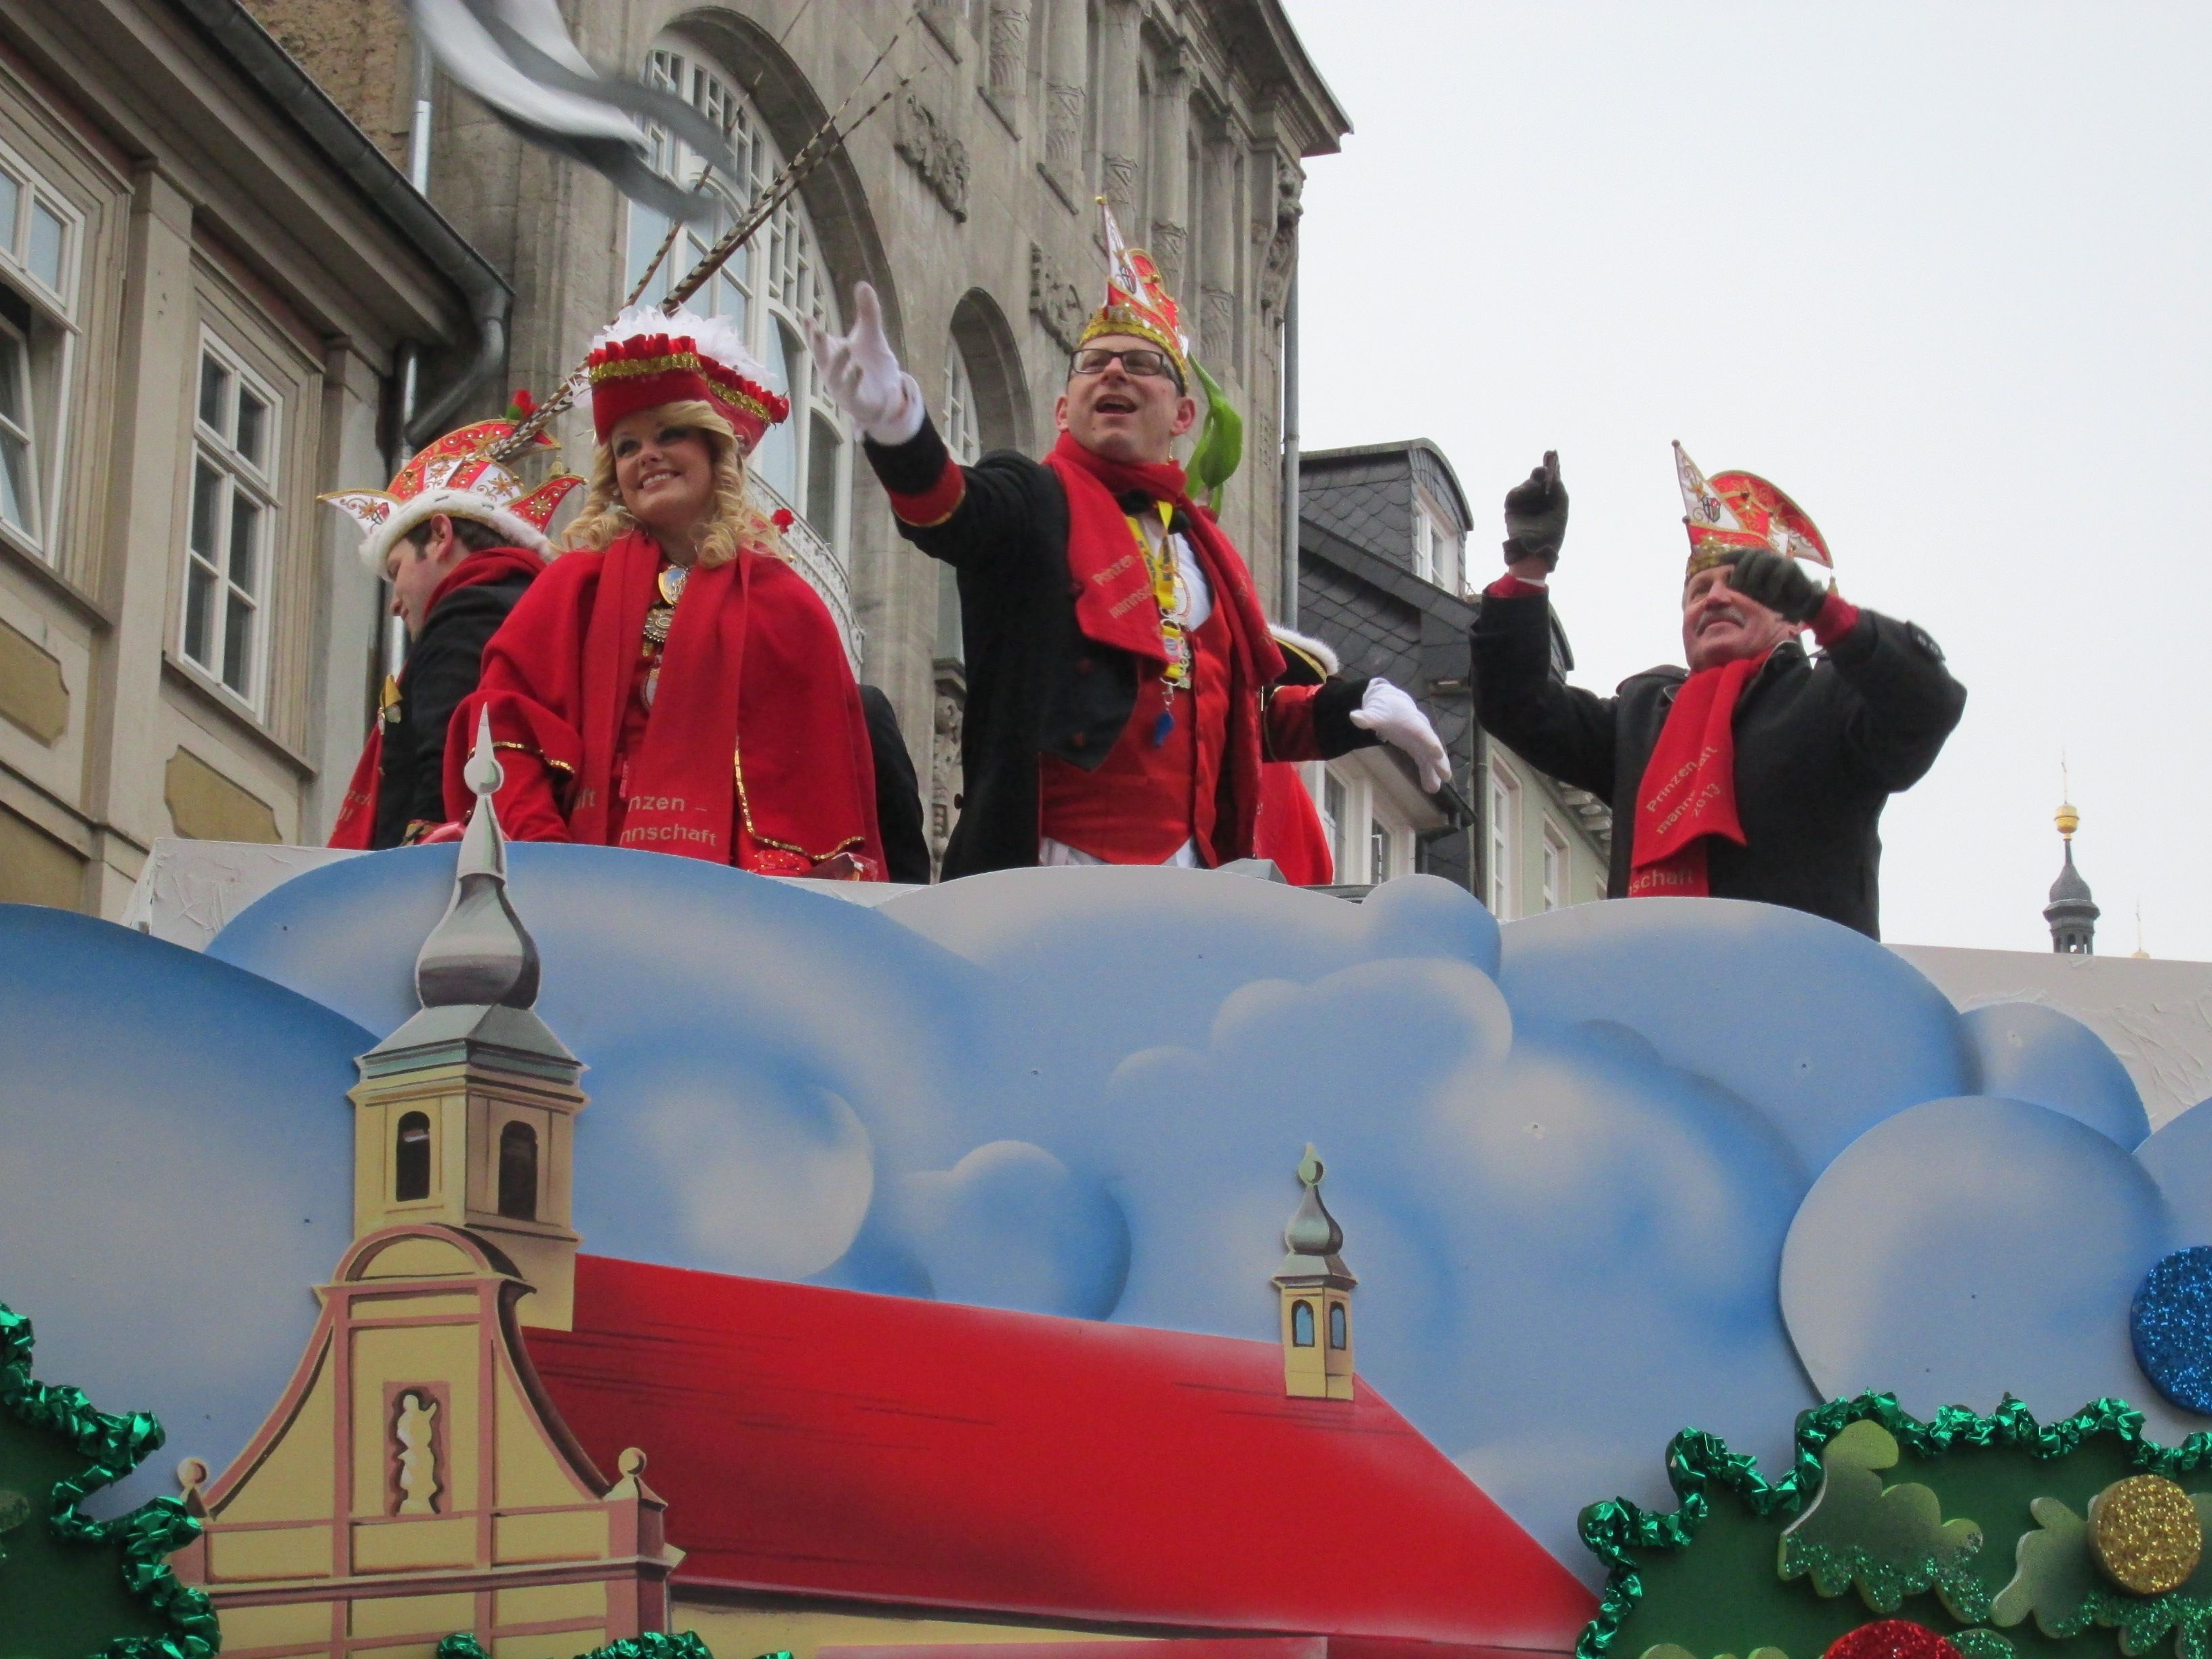 Stimmung Und Kamelle Am Rosenmontag In Fulda Cities In Germany Fulda Old World Charm